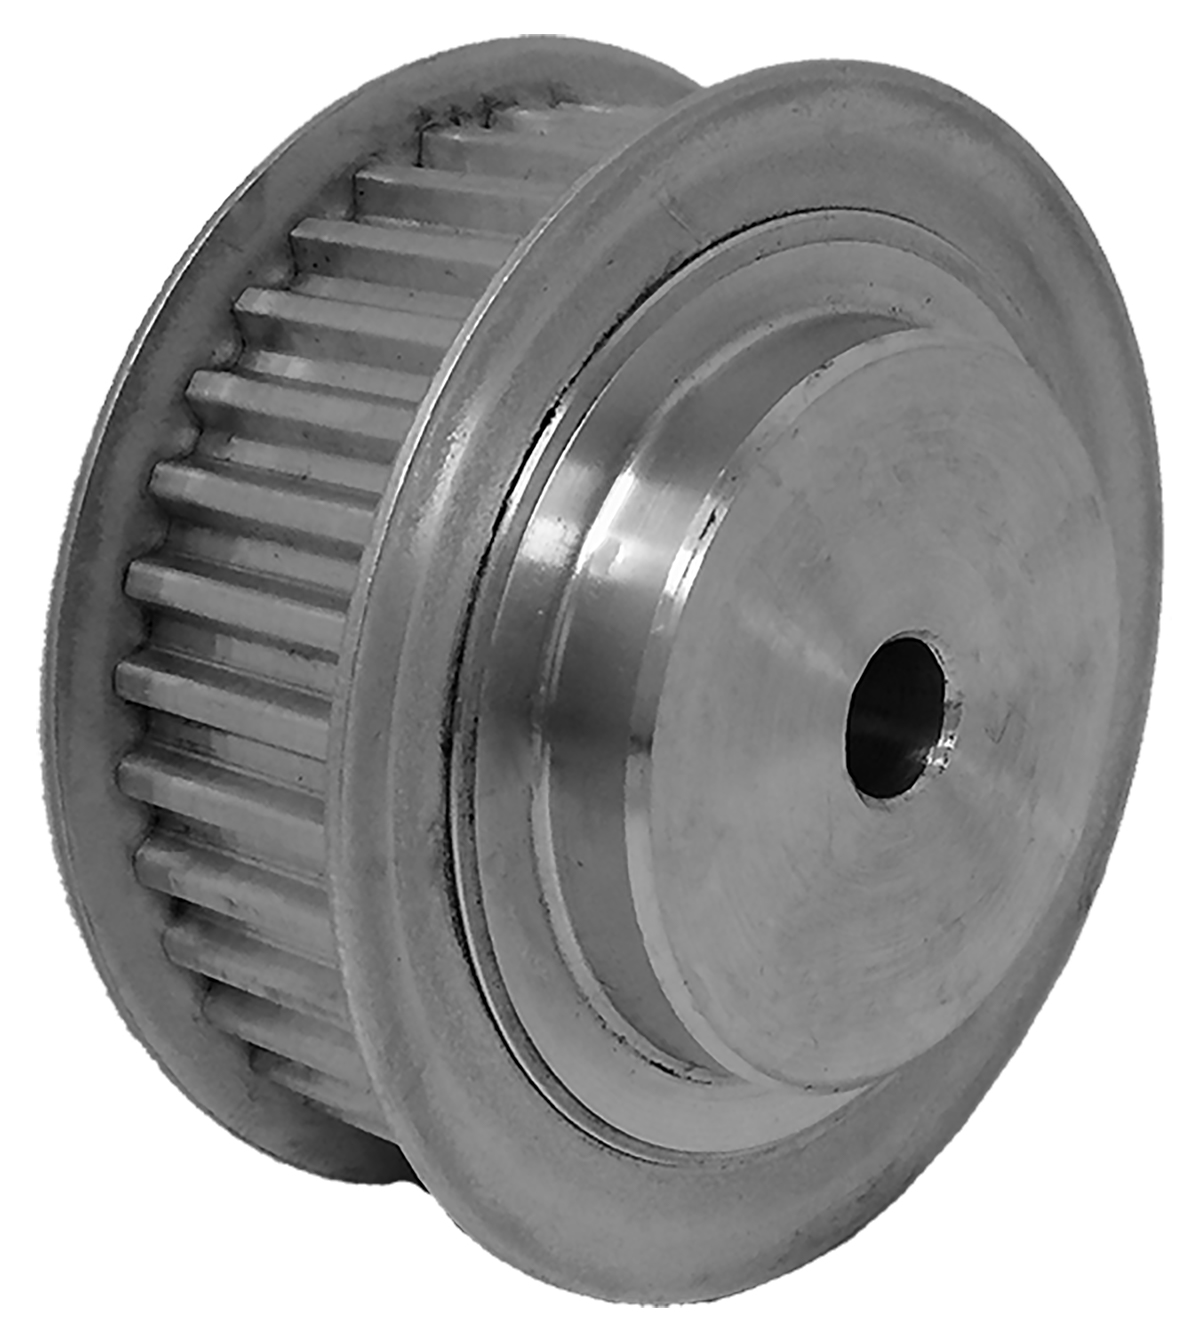 27T5/36-2 - Aluminum Metric Pulleys